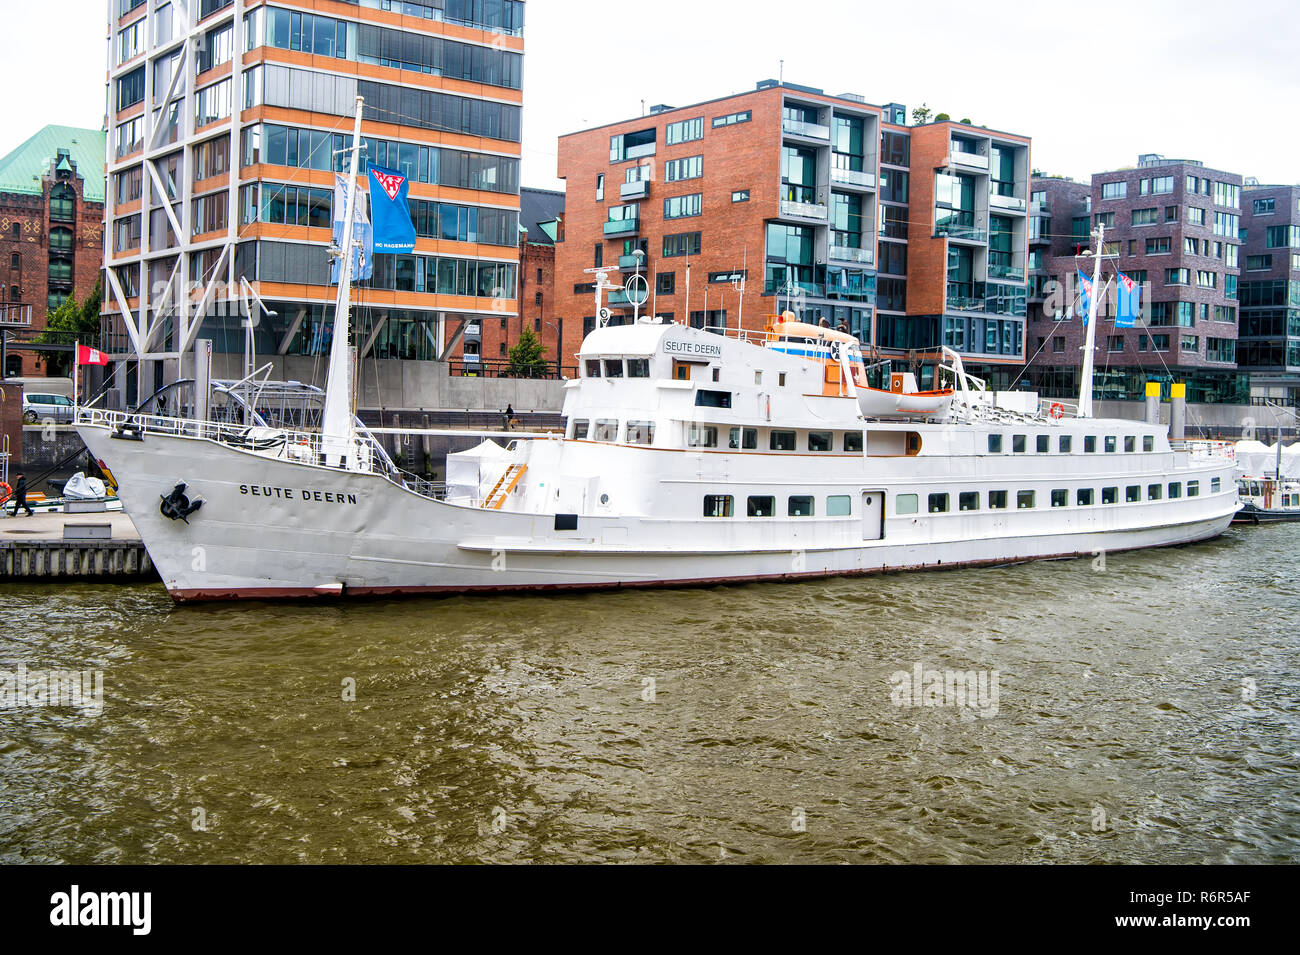 Hamburg, Germany - September 07, 2017: ship at ferry pier on cityscape background. River transport, transportation. Water travel, travelling, trip. Vacation, discovery, wanderlust. Stock Photo